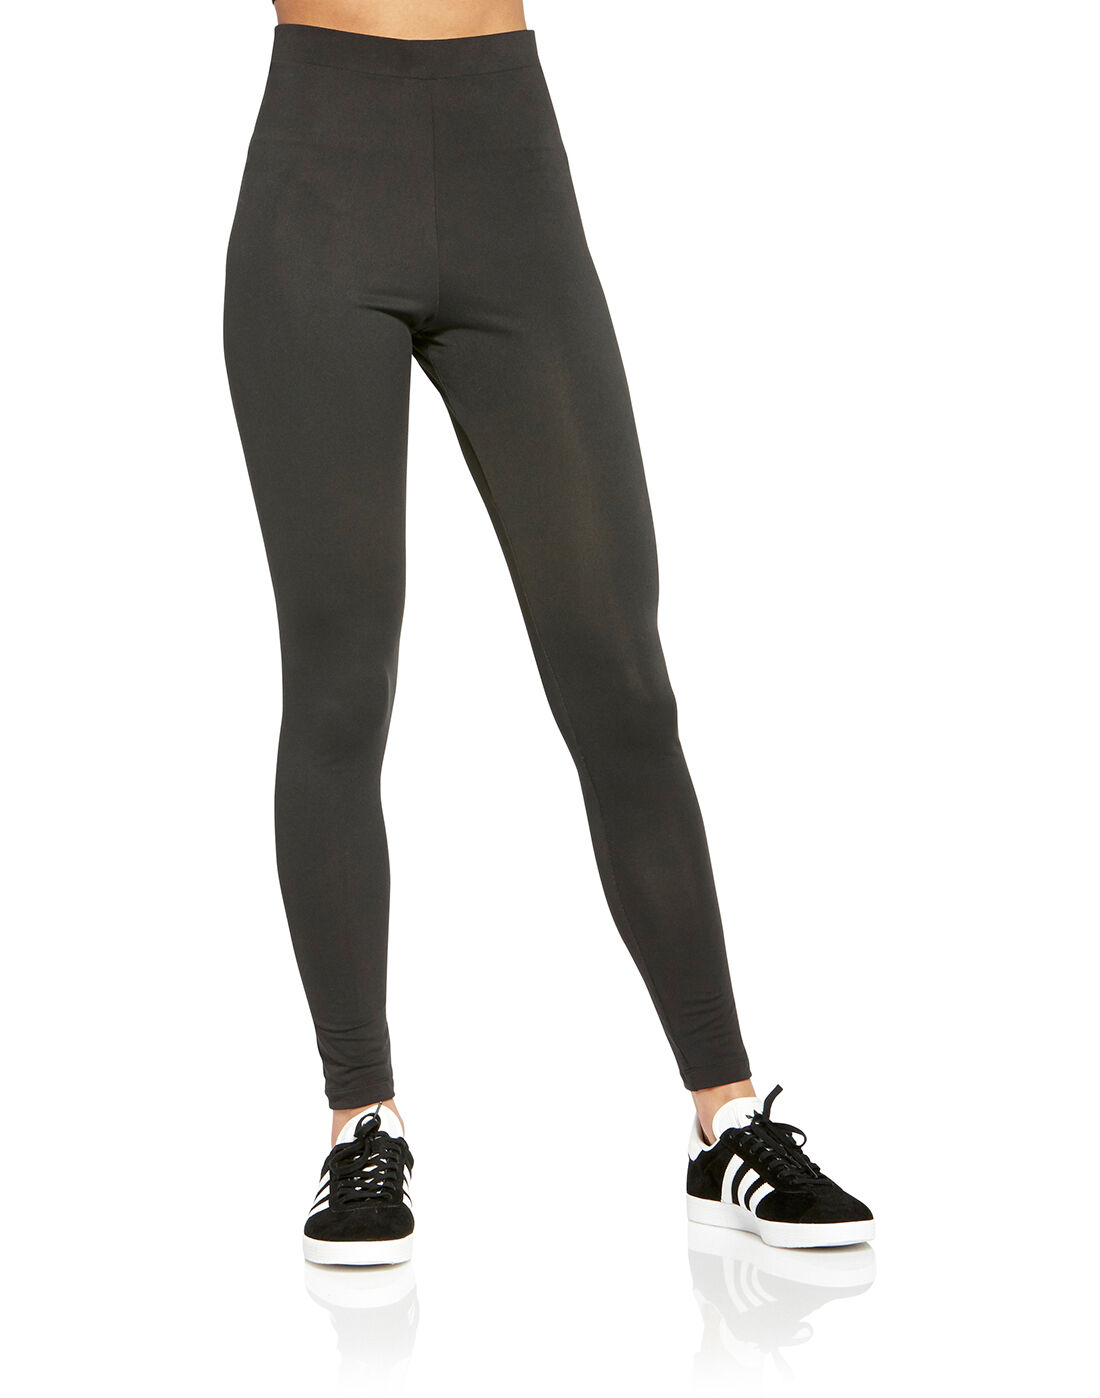 Women's Black adidas Originals Trefoil Tights | Life Style